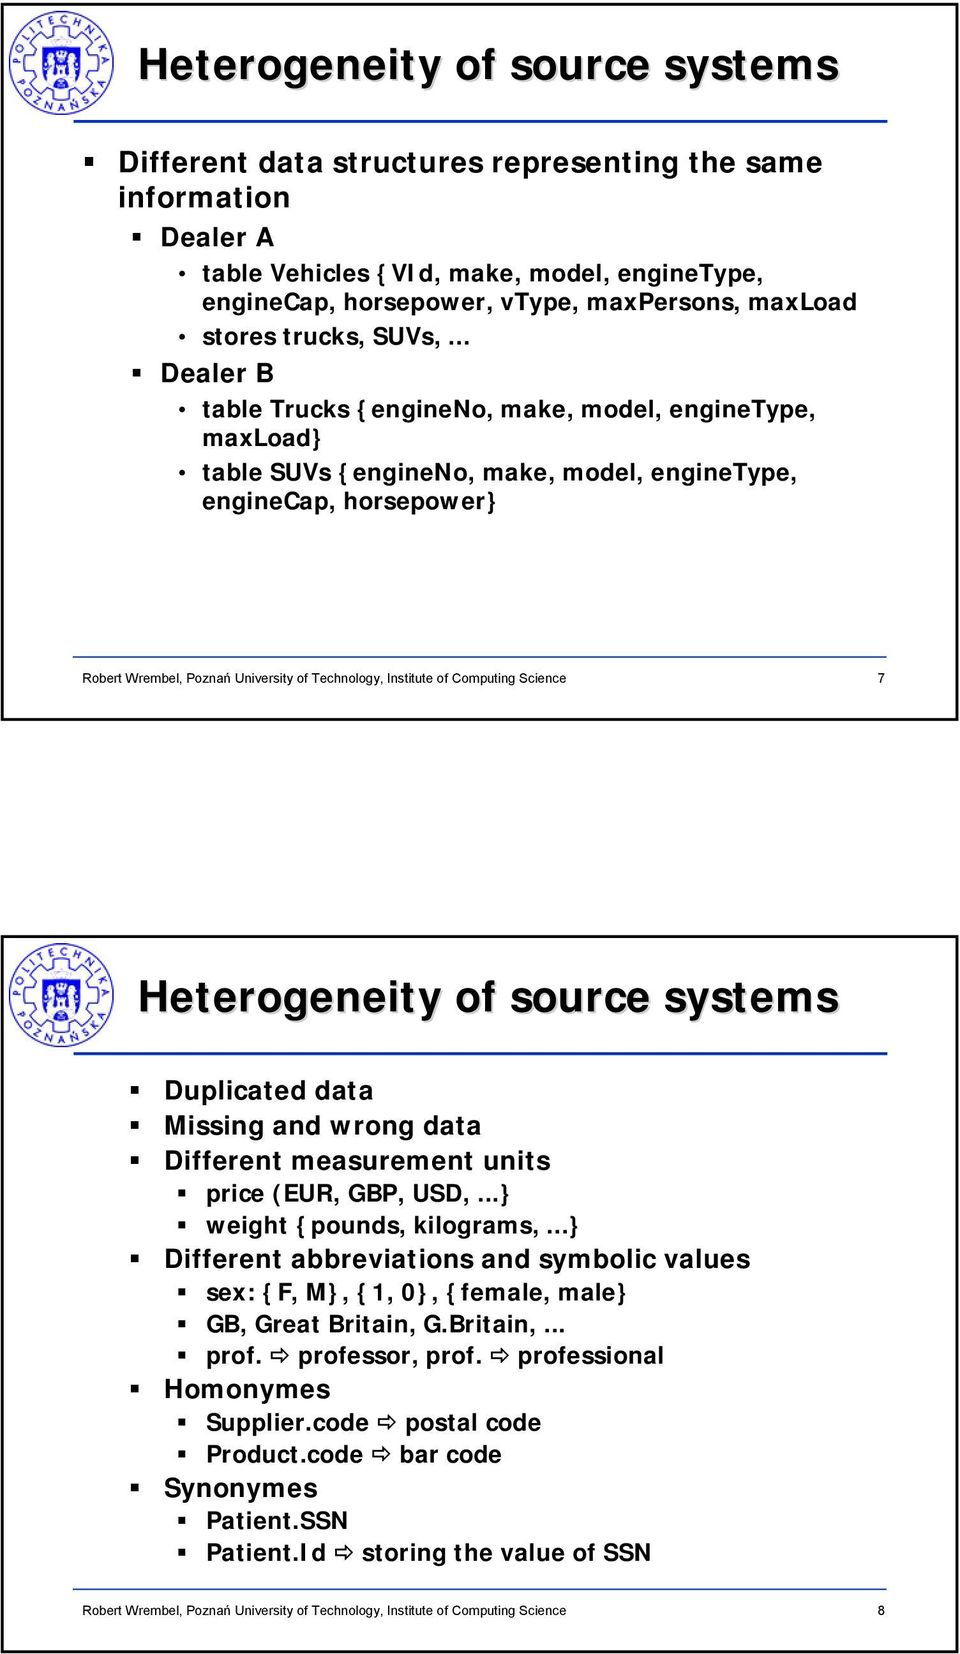 .. Dealer B table Trucks {engineno, make, model, enginetype, maxload} table SUVs {engineno, make, model, enginetype, enginecap, horsepower} 7 Heterogeneity of source systems Duplicated data